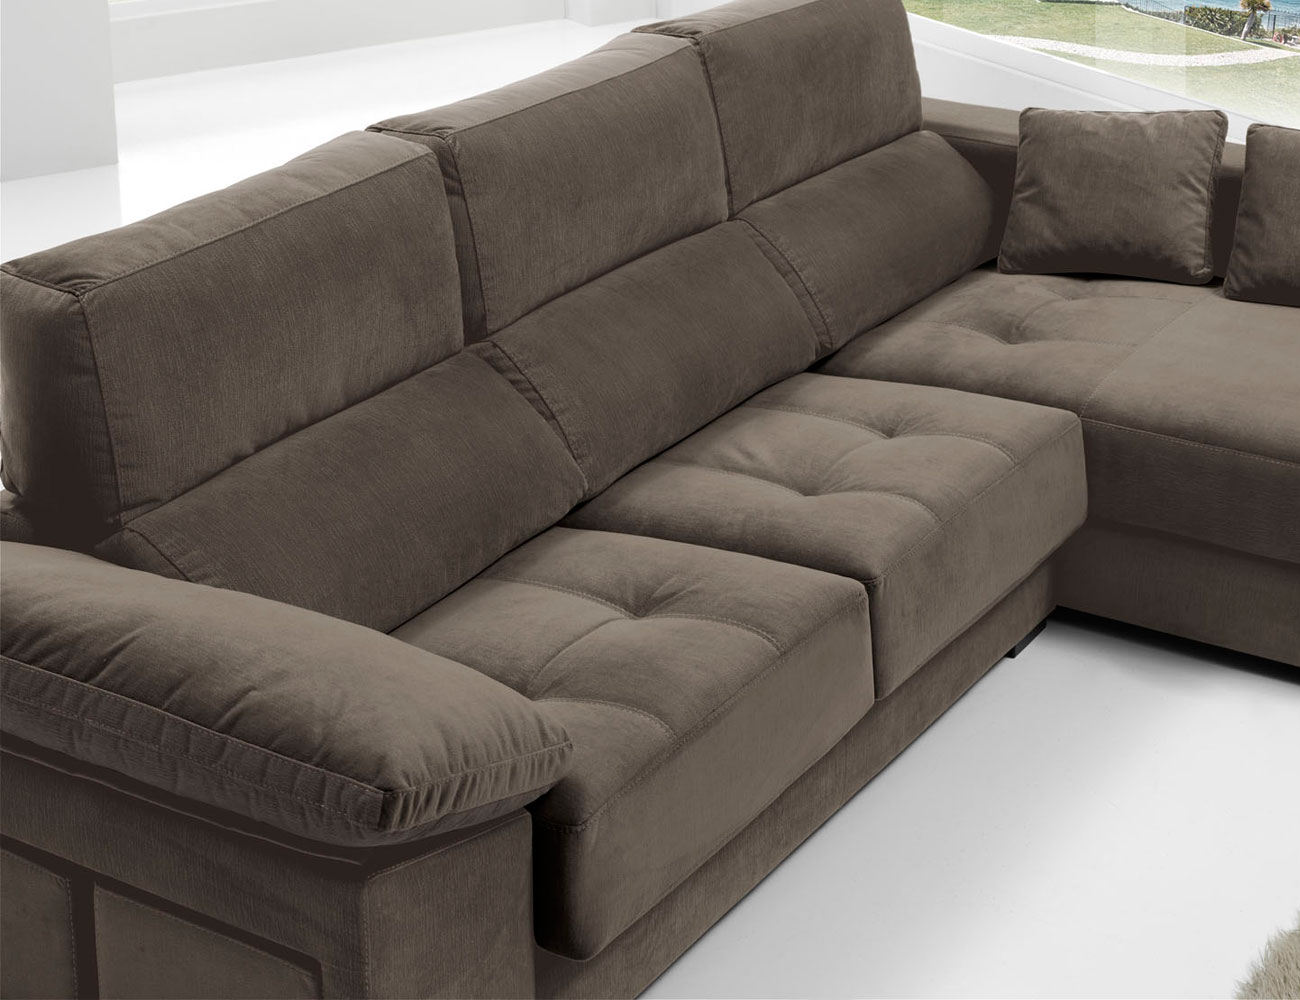 Sofa chaiselongue anti manchas bering pouf 235